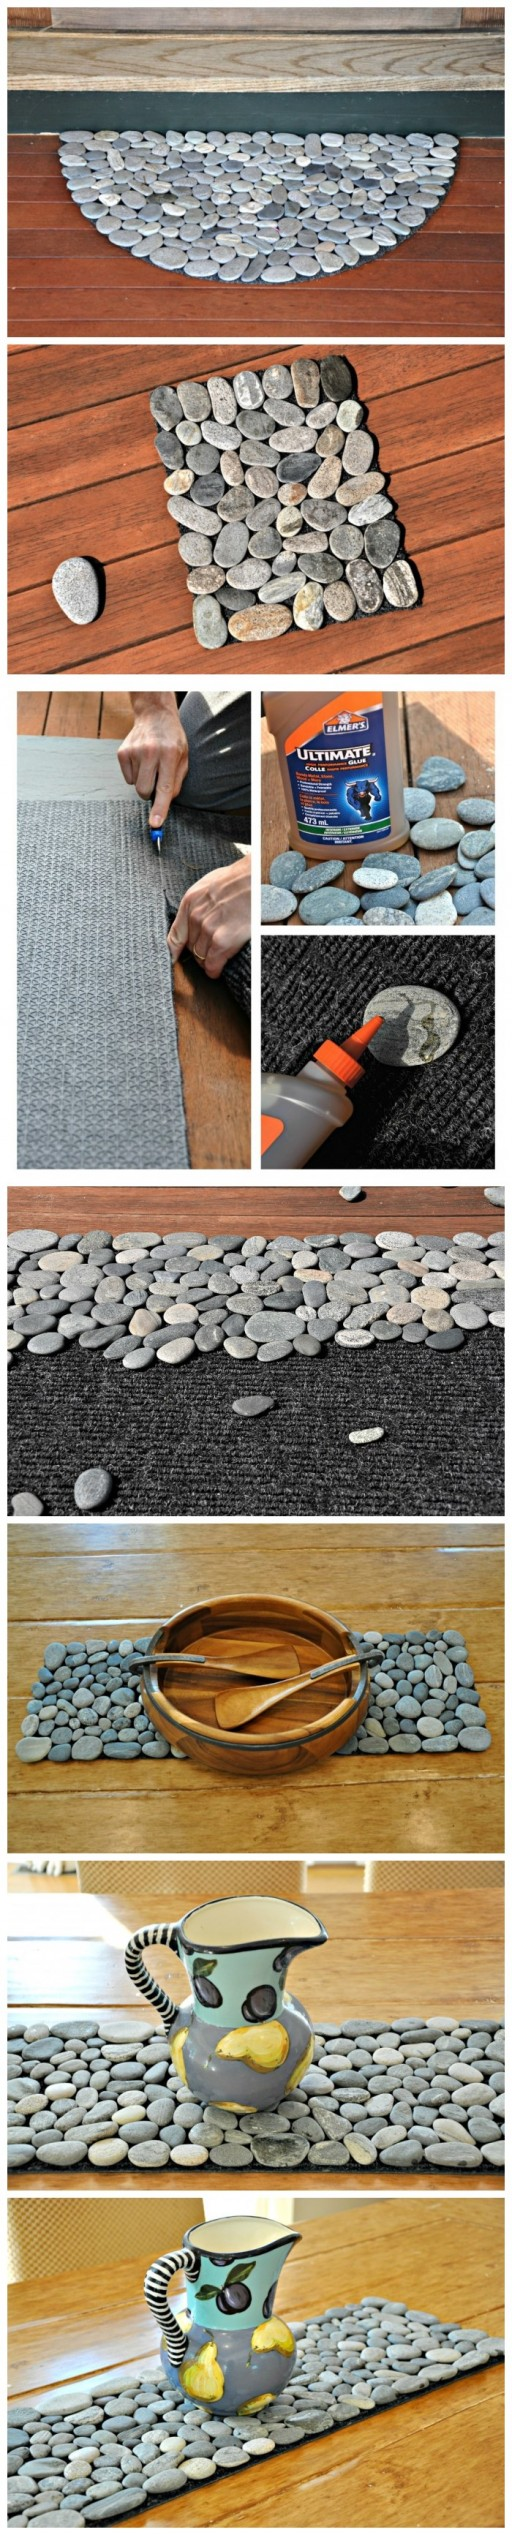 How to make awesome stone doormat step by step DIY tutorial instructions